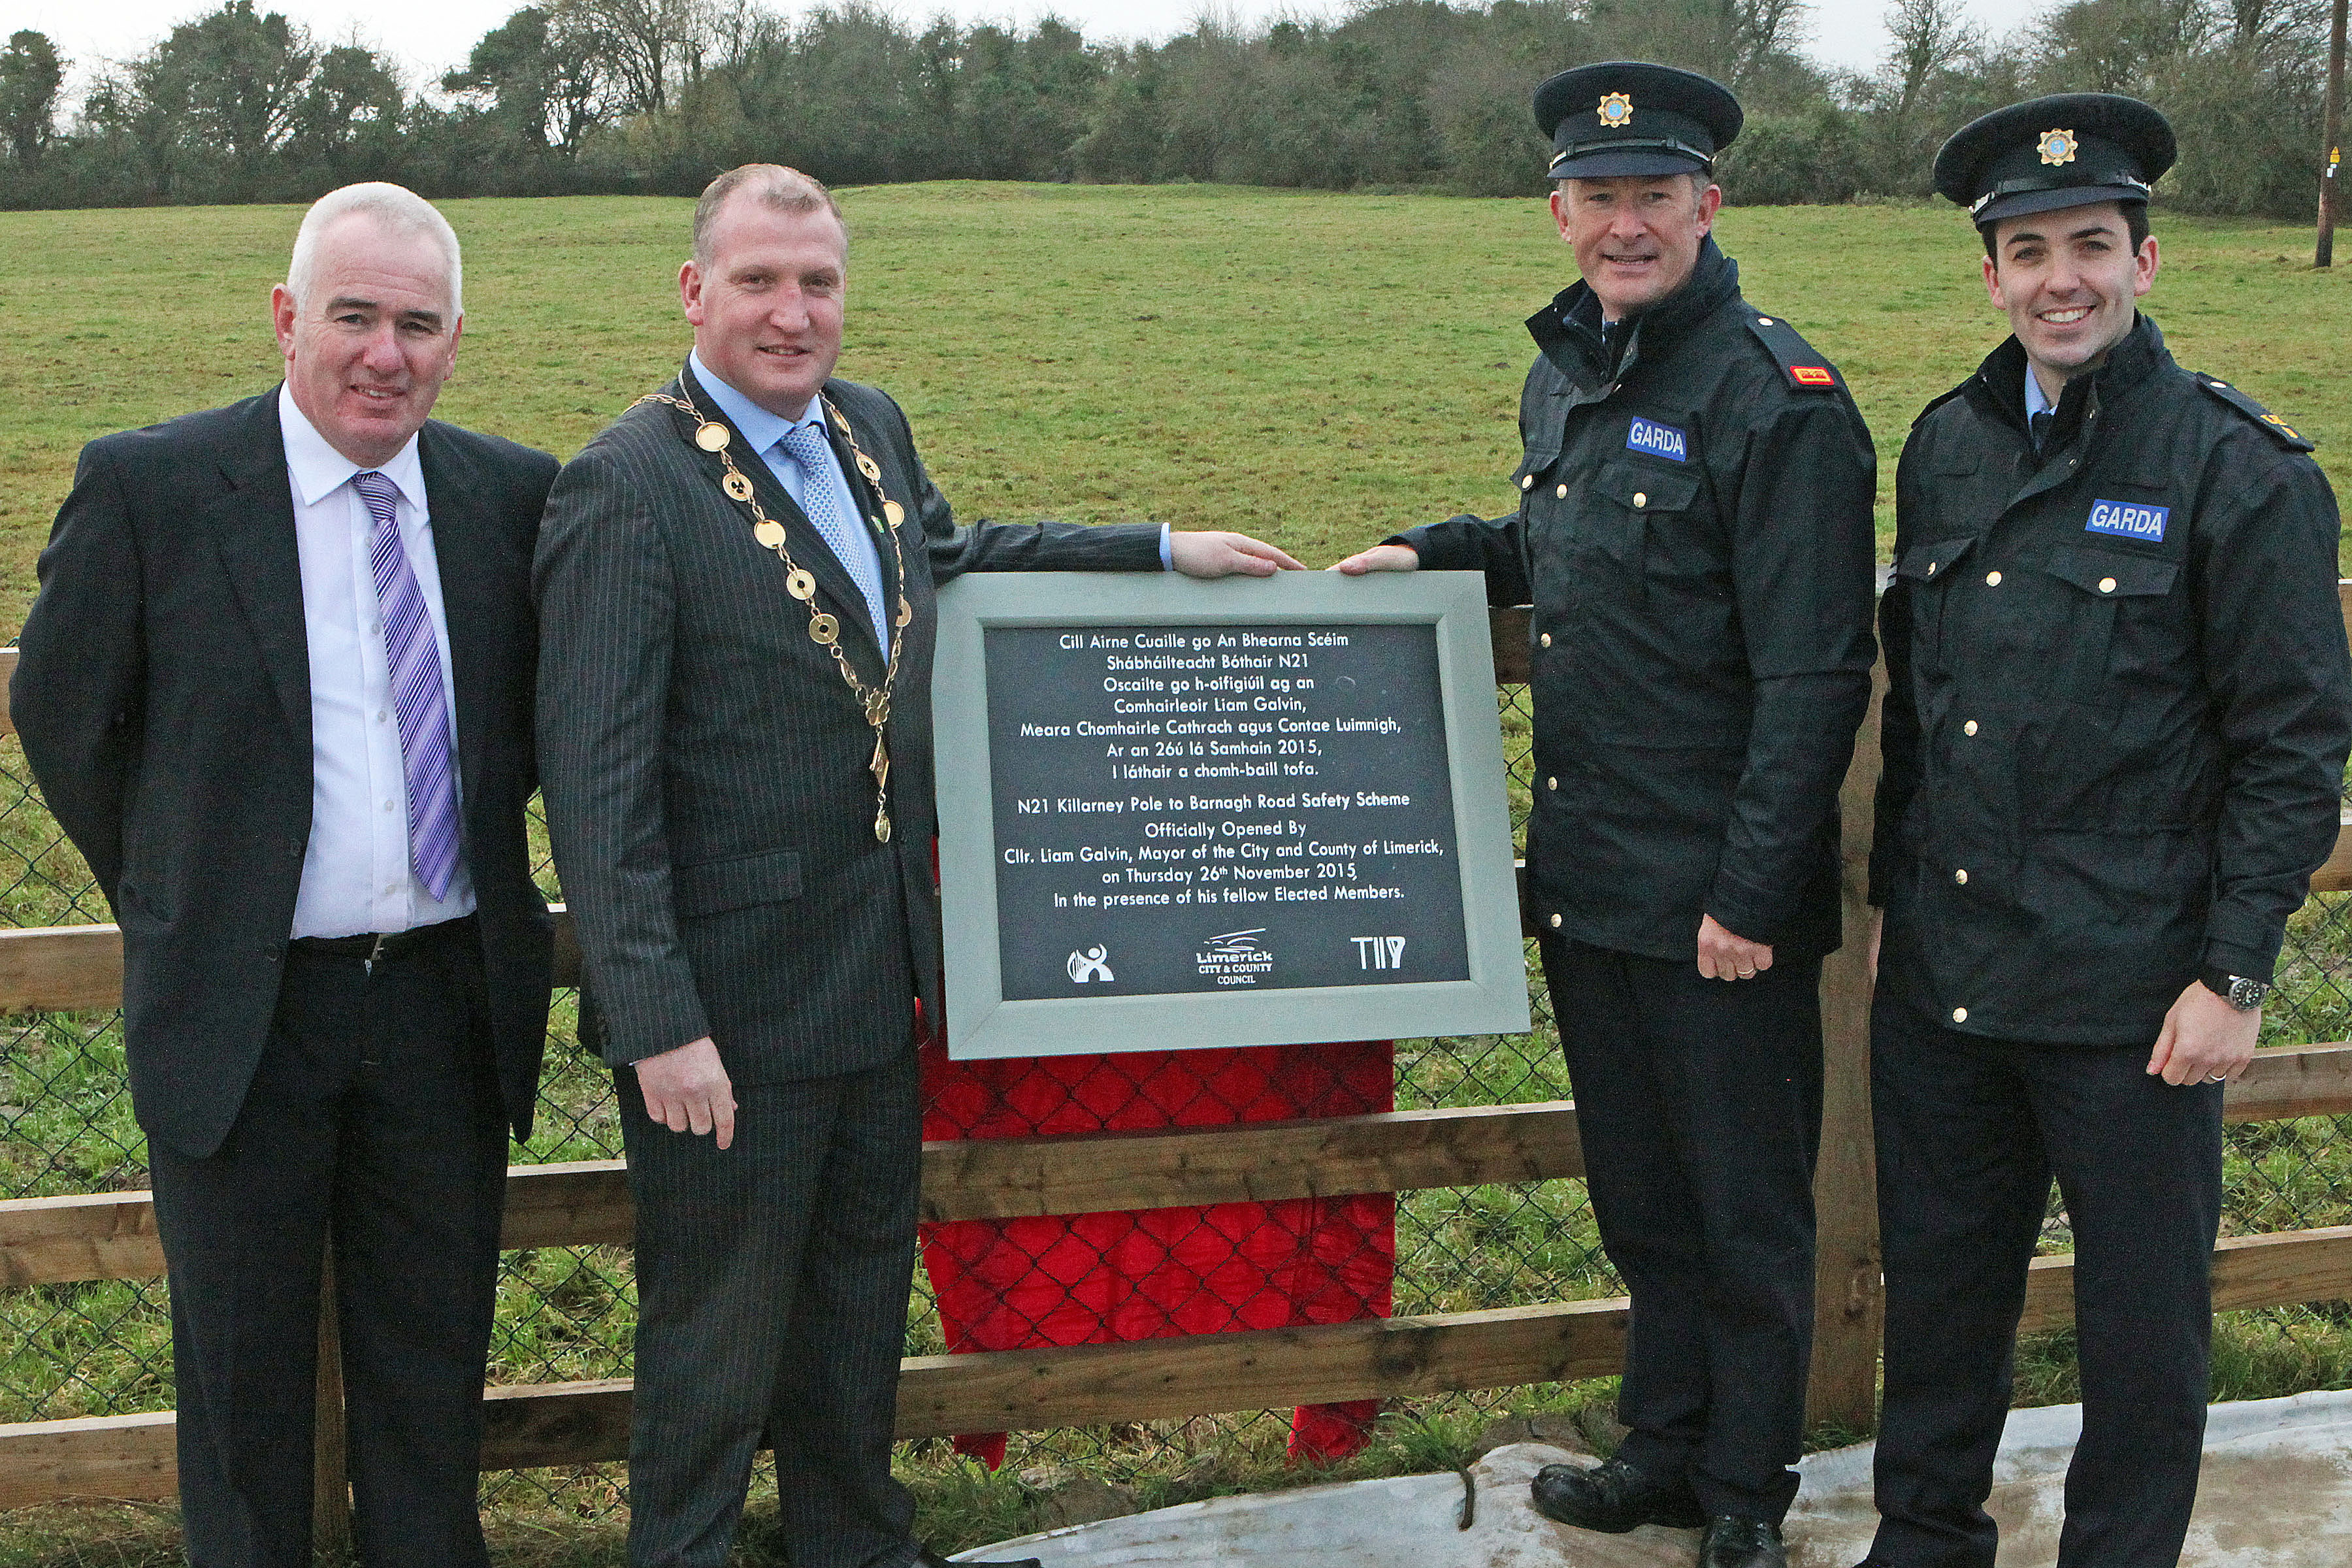 Opening of new Limerick Road Project